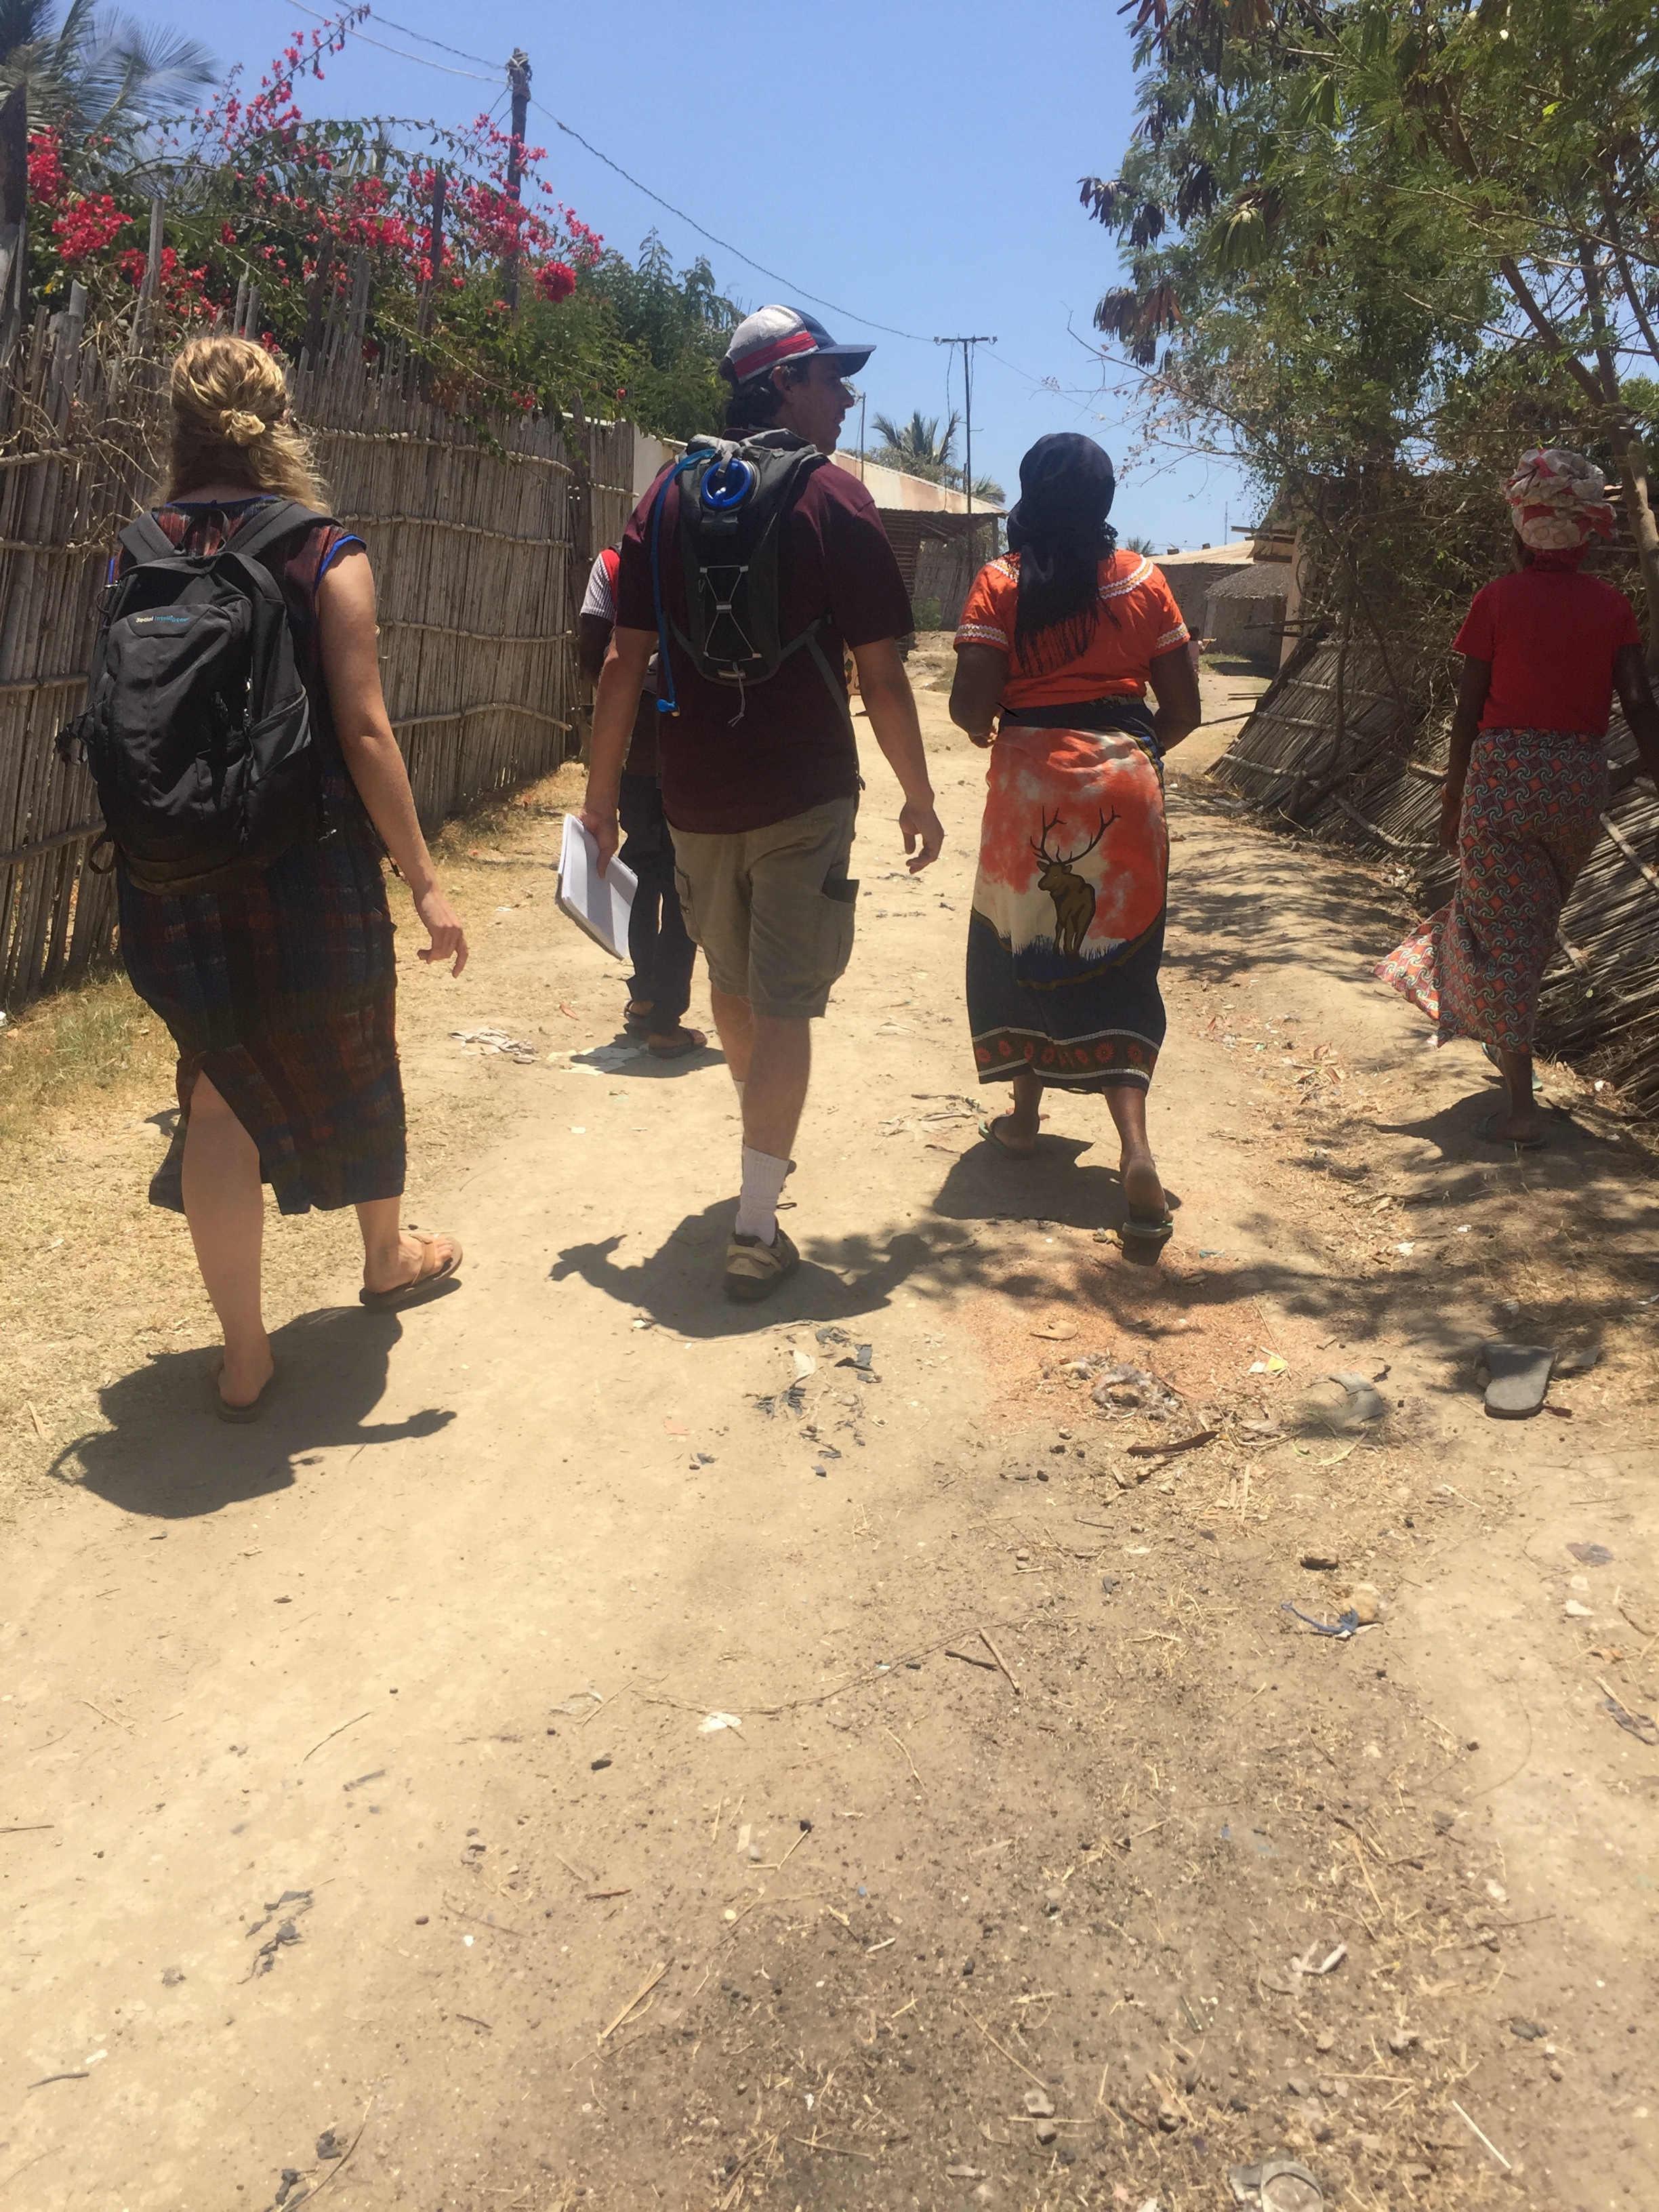 Walking in the village to the widows home.